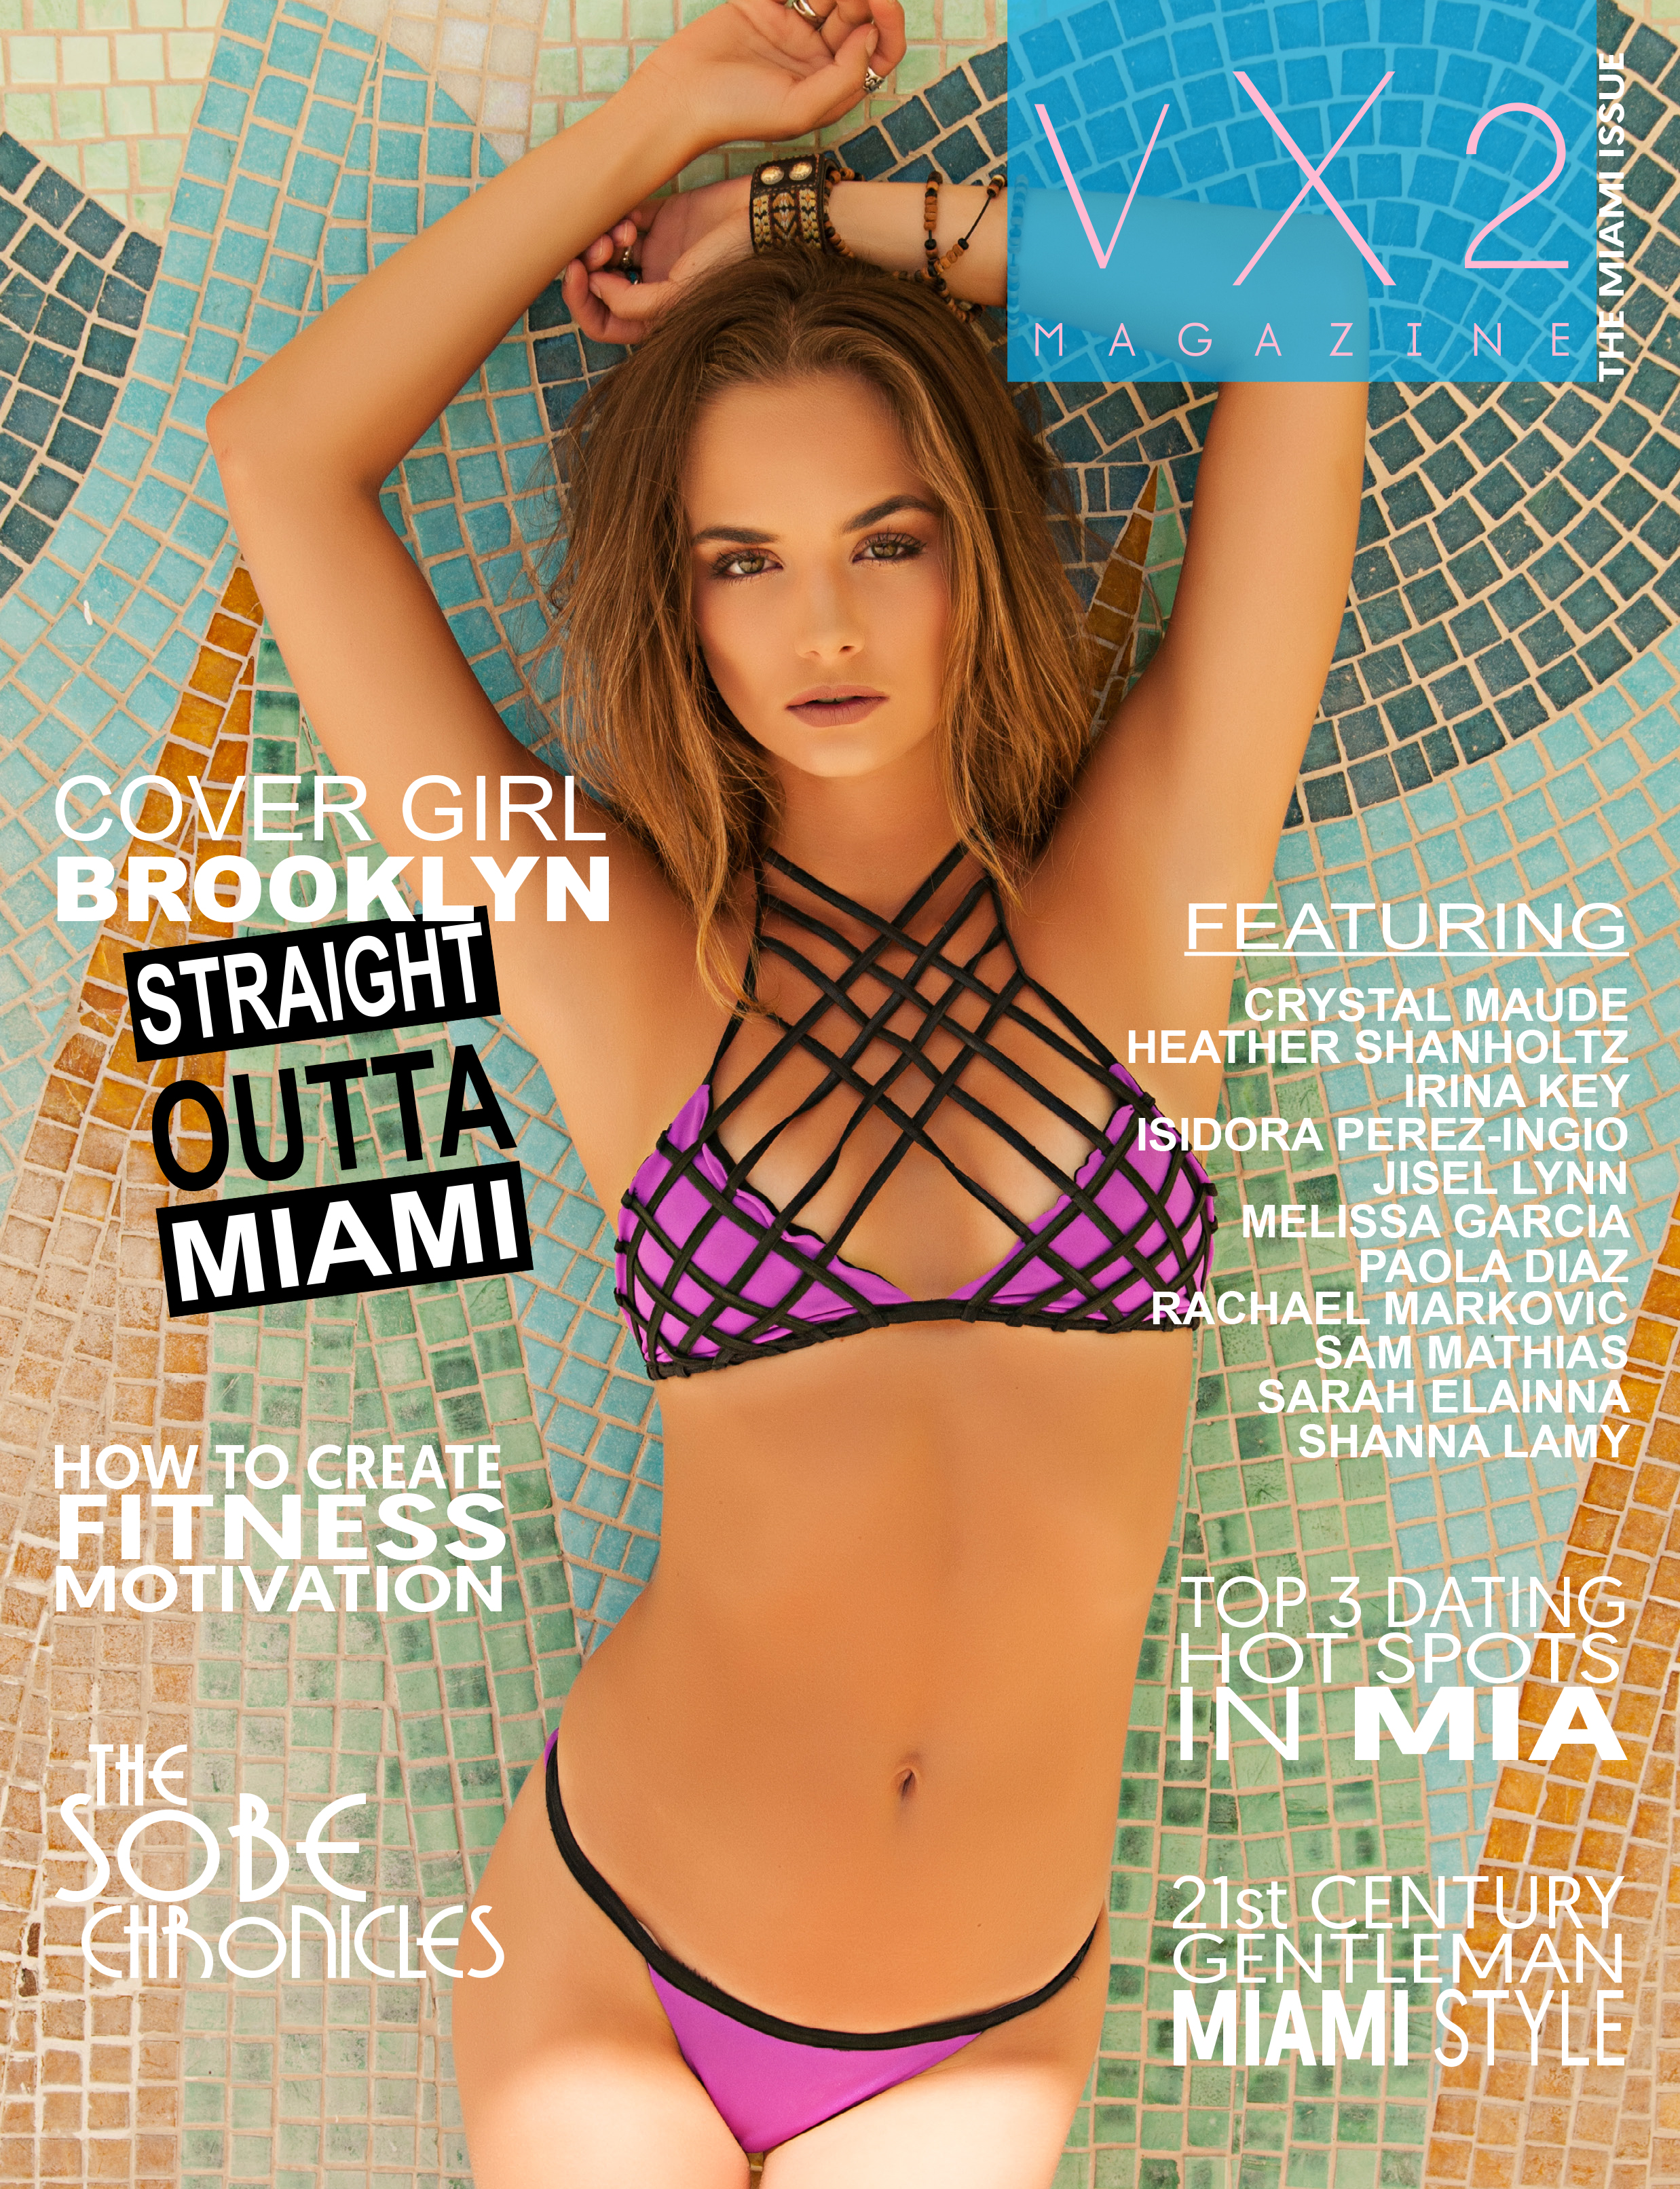 Miami Cover VX2 Magazine.jpg